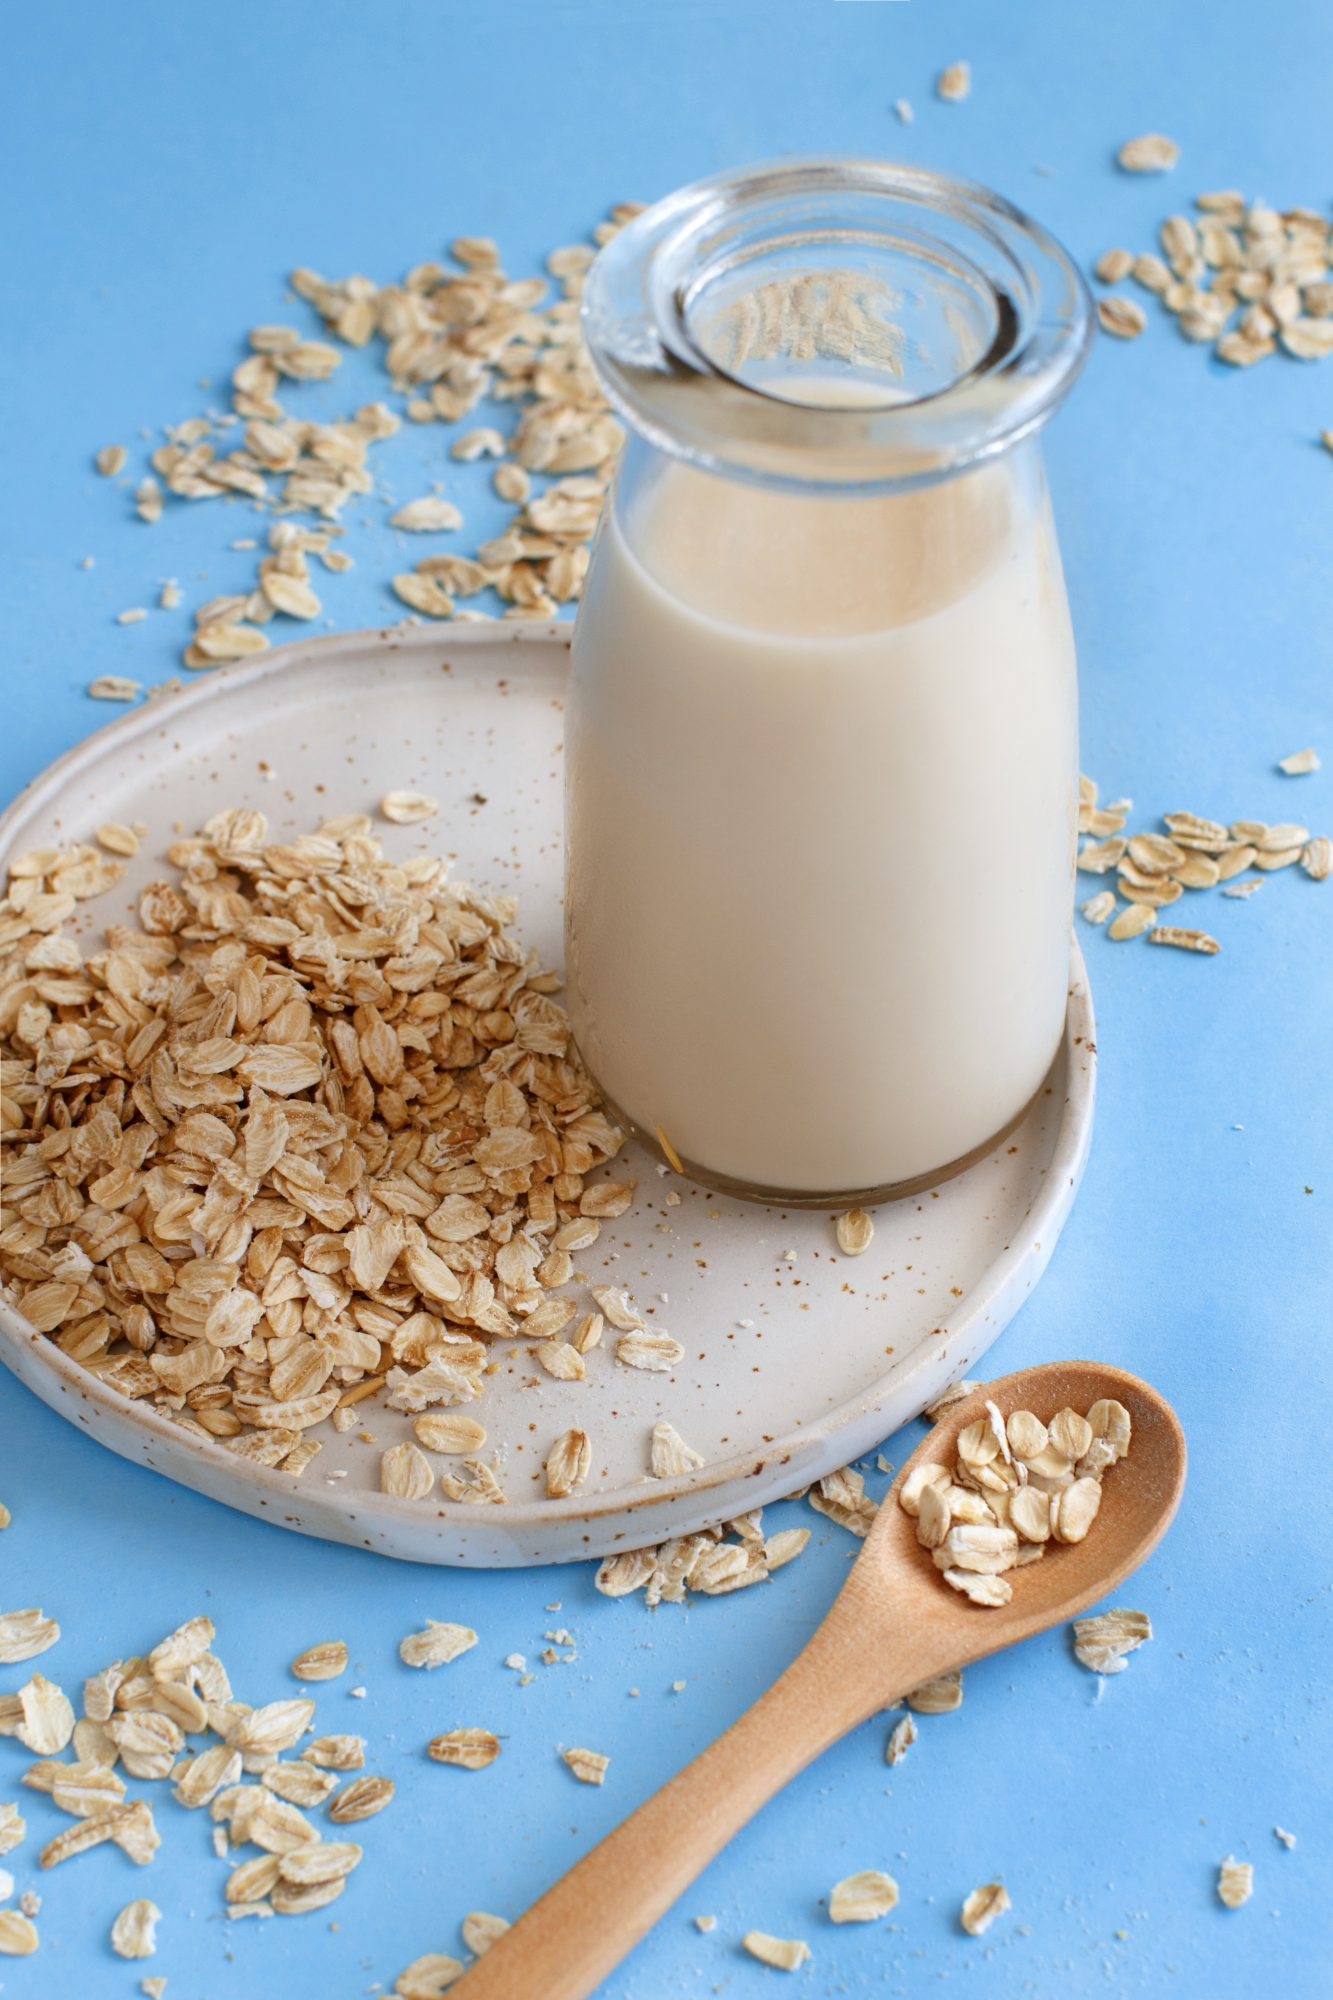 Bottle of oat milk and plate of oat flakes